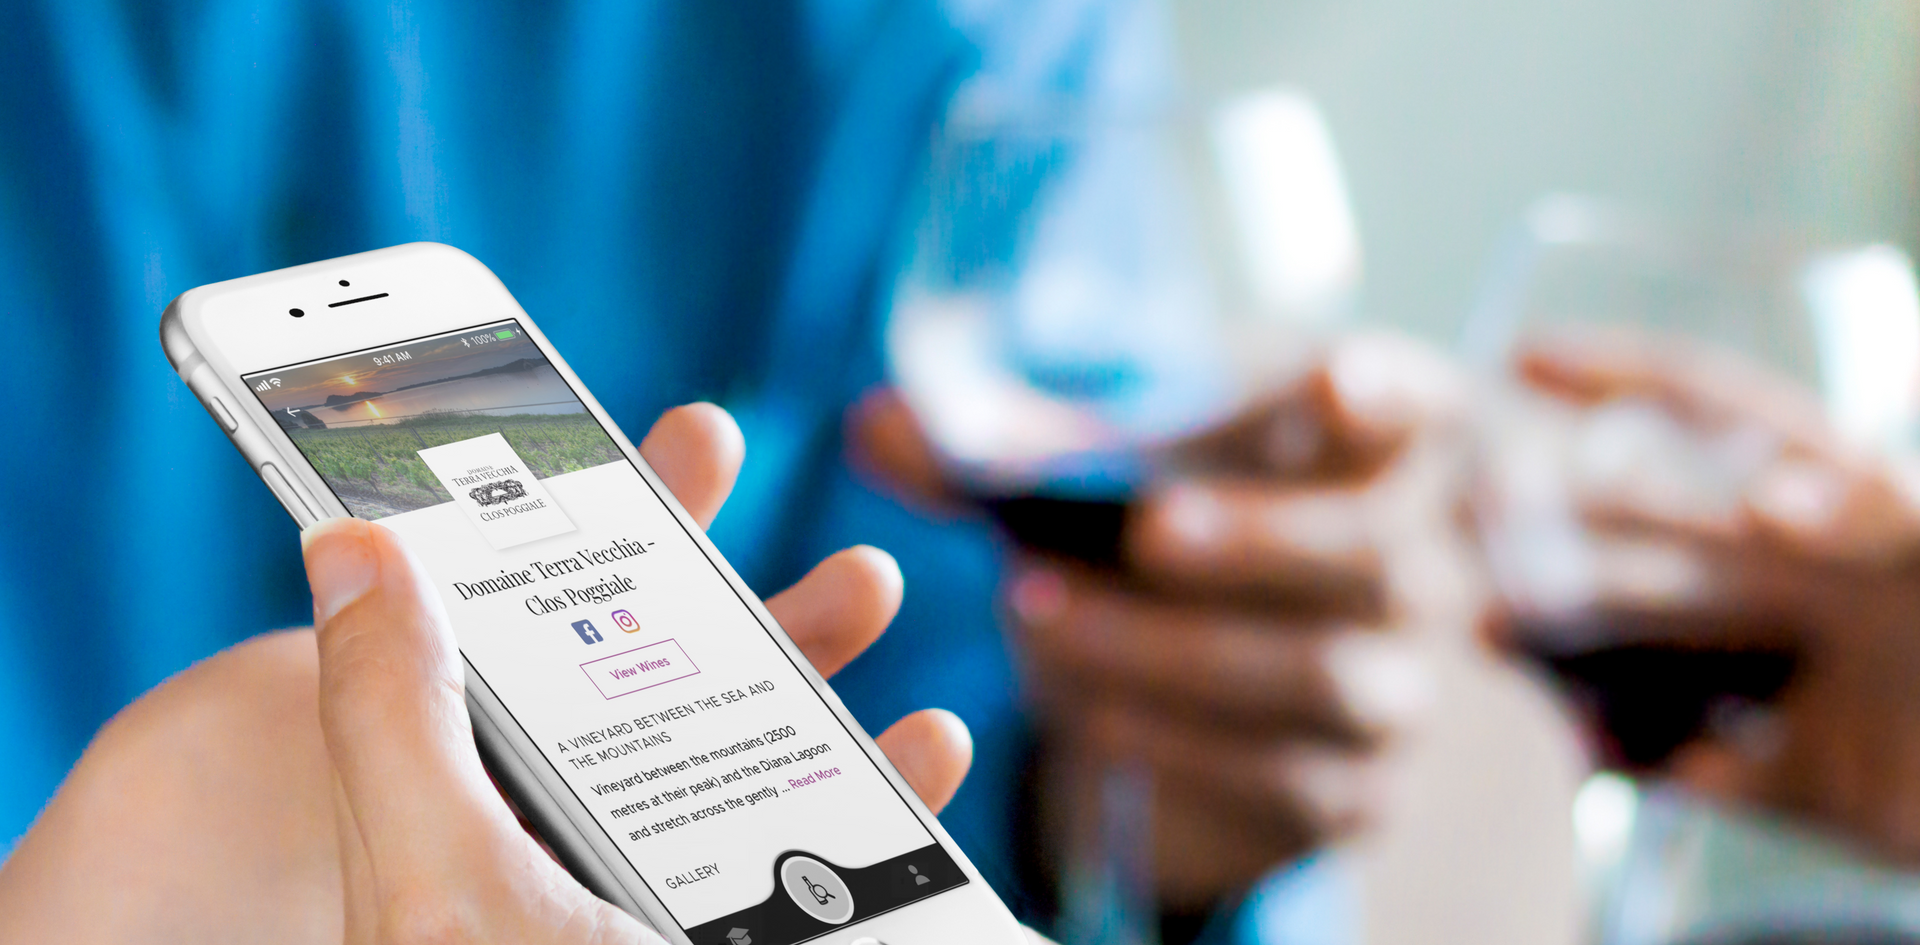 Navigate directly to the winery's page